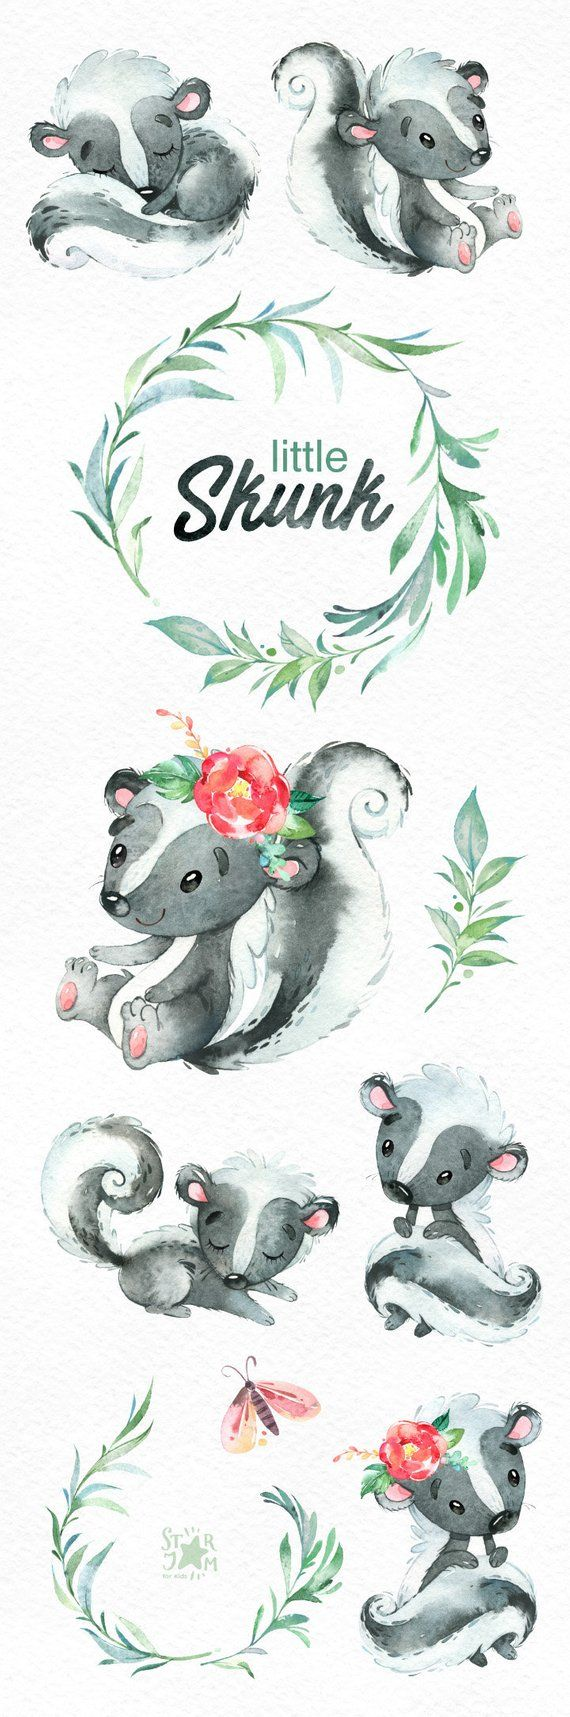 little skunk watercolor animals clip art wild native forest